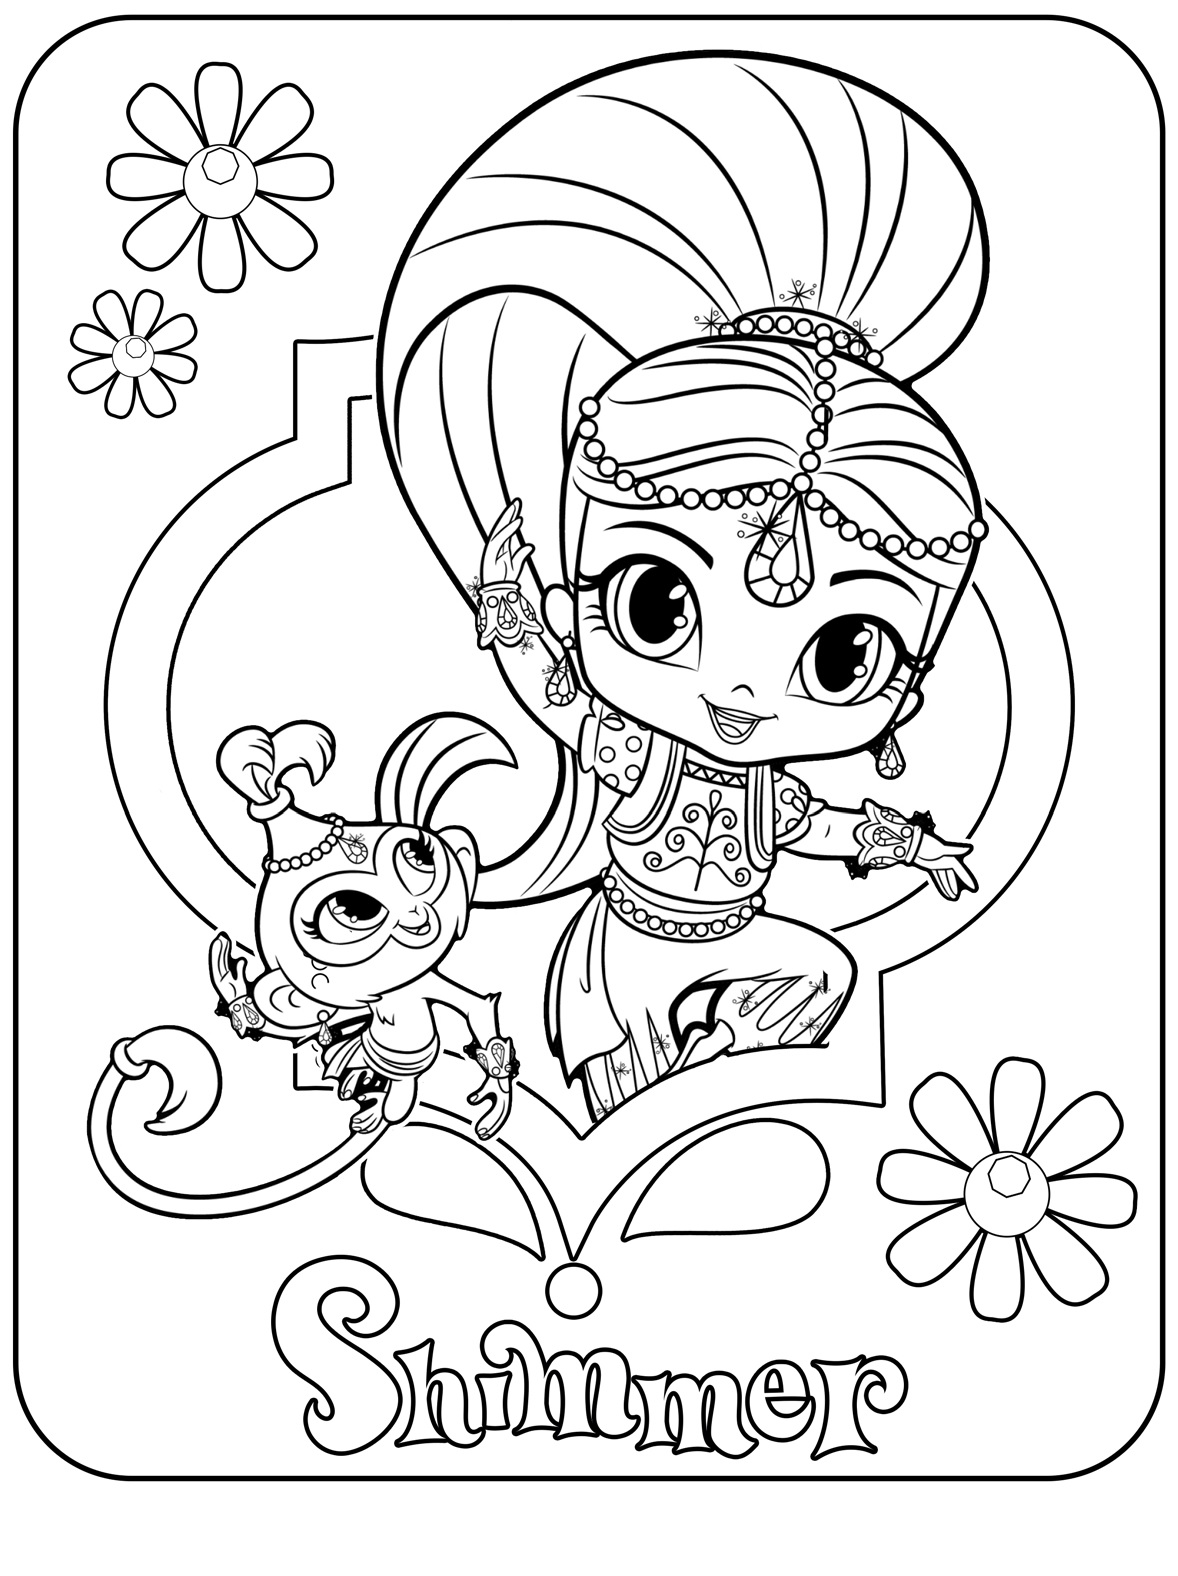 nickelodeon shimmer and shine coloring pages | Shimmer-Spring-time-coloring-page